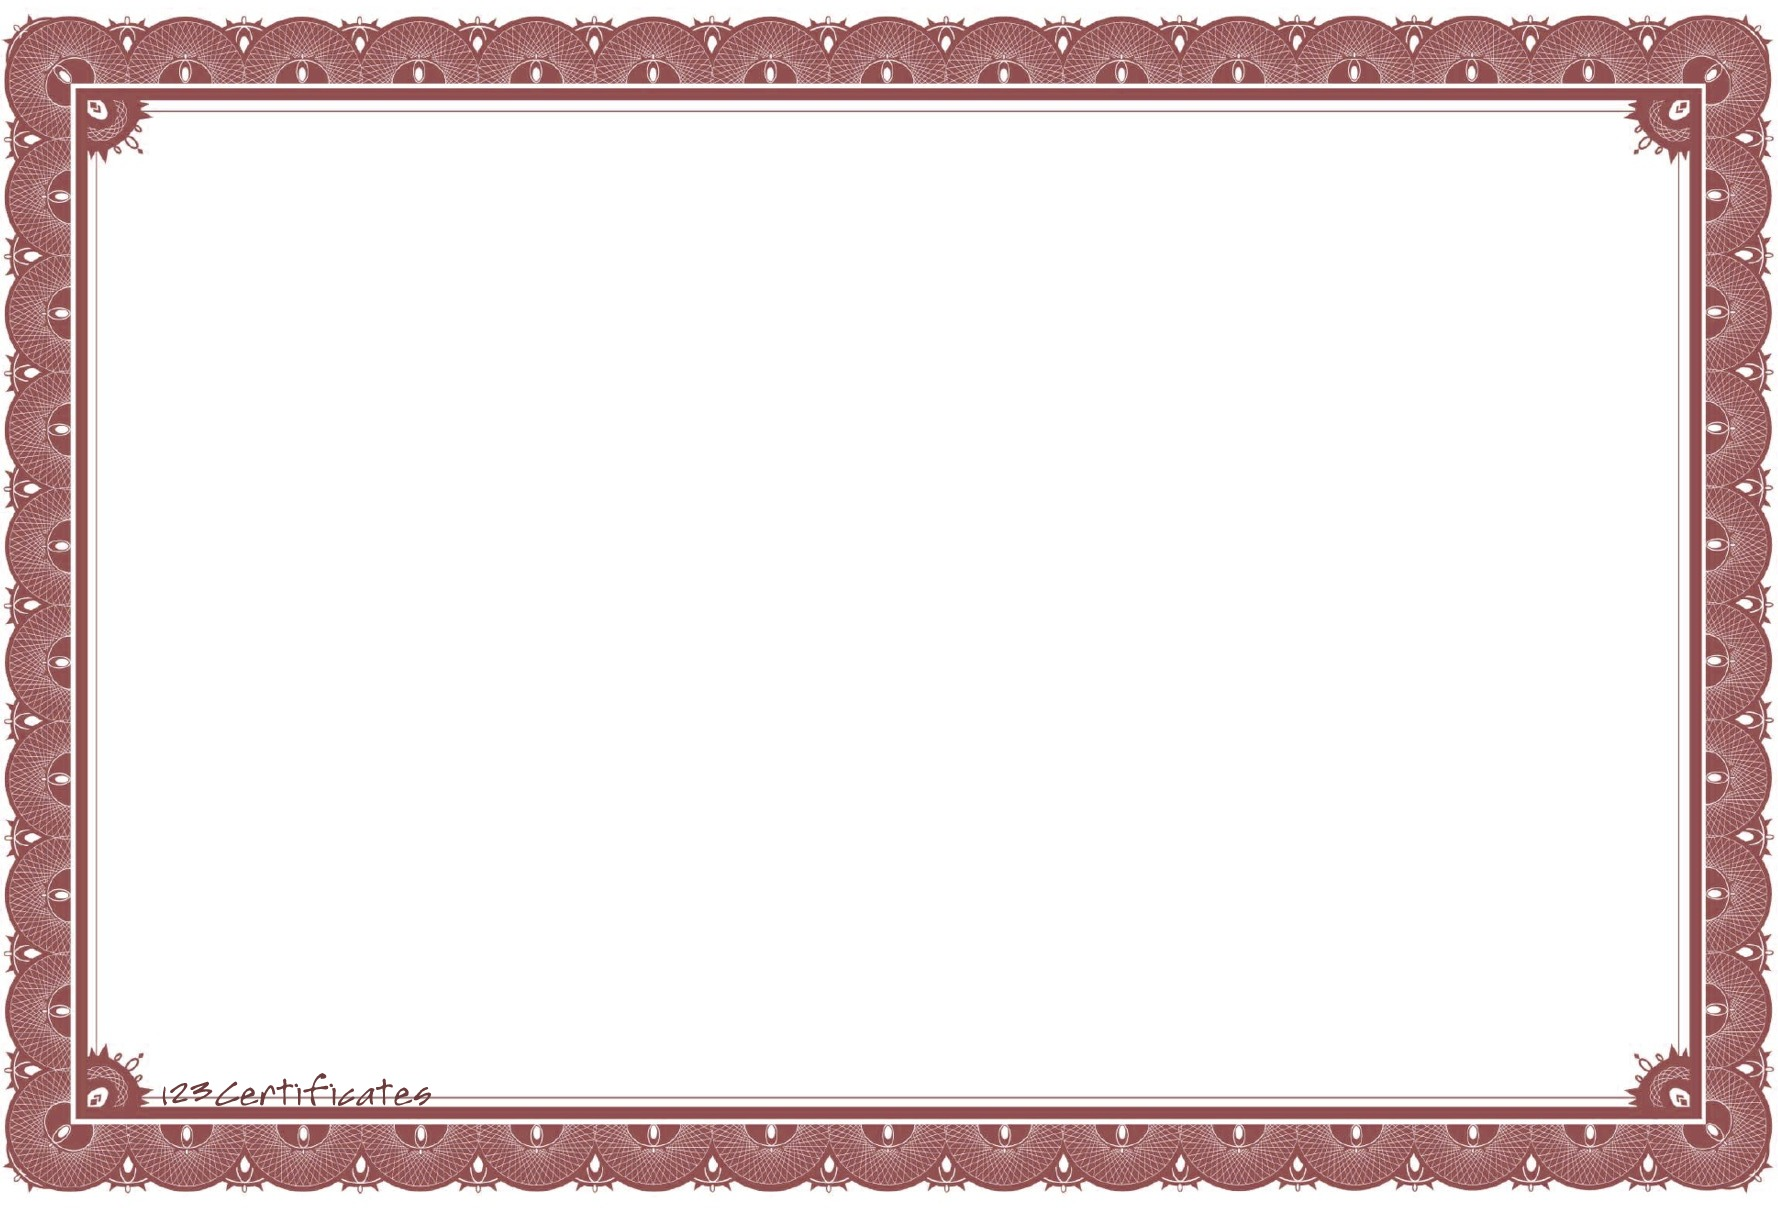 Free certificate borders to download, certificate templates for.